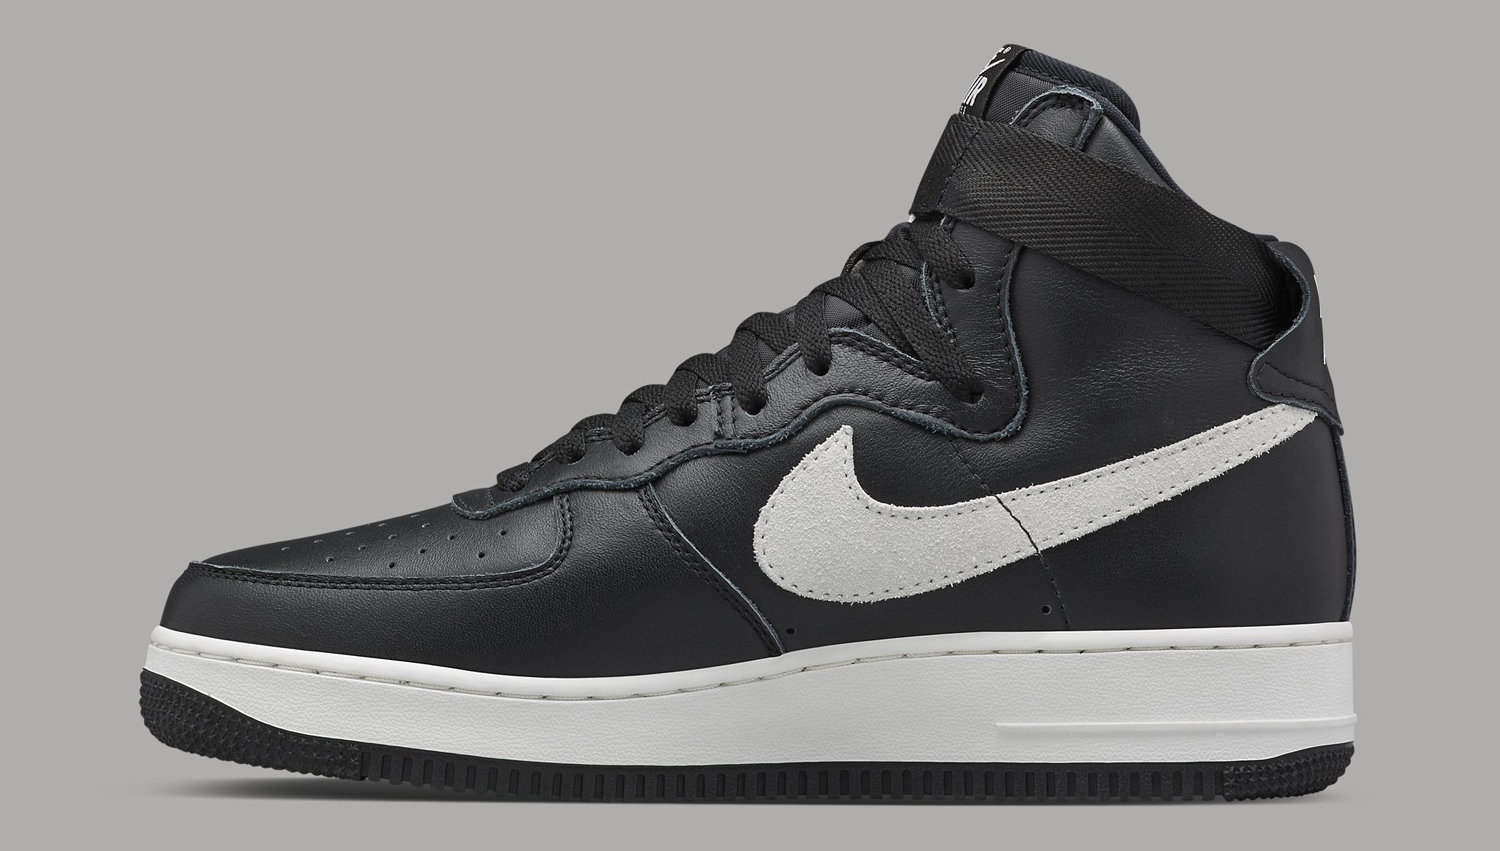 nike dunk chaussures basses pour les filles - It's a Great Time to Be a Nike Air Force 1 Fan | Sole Collector